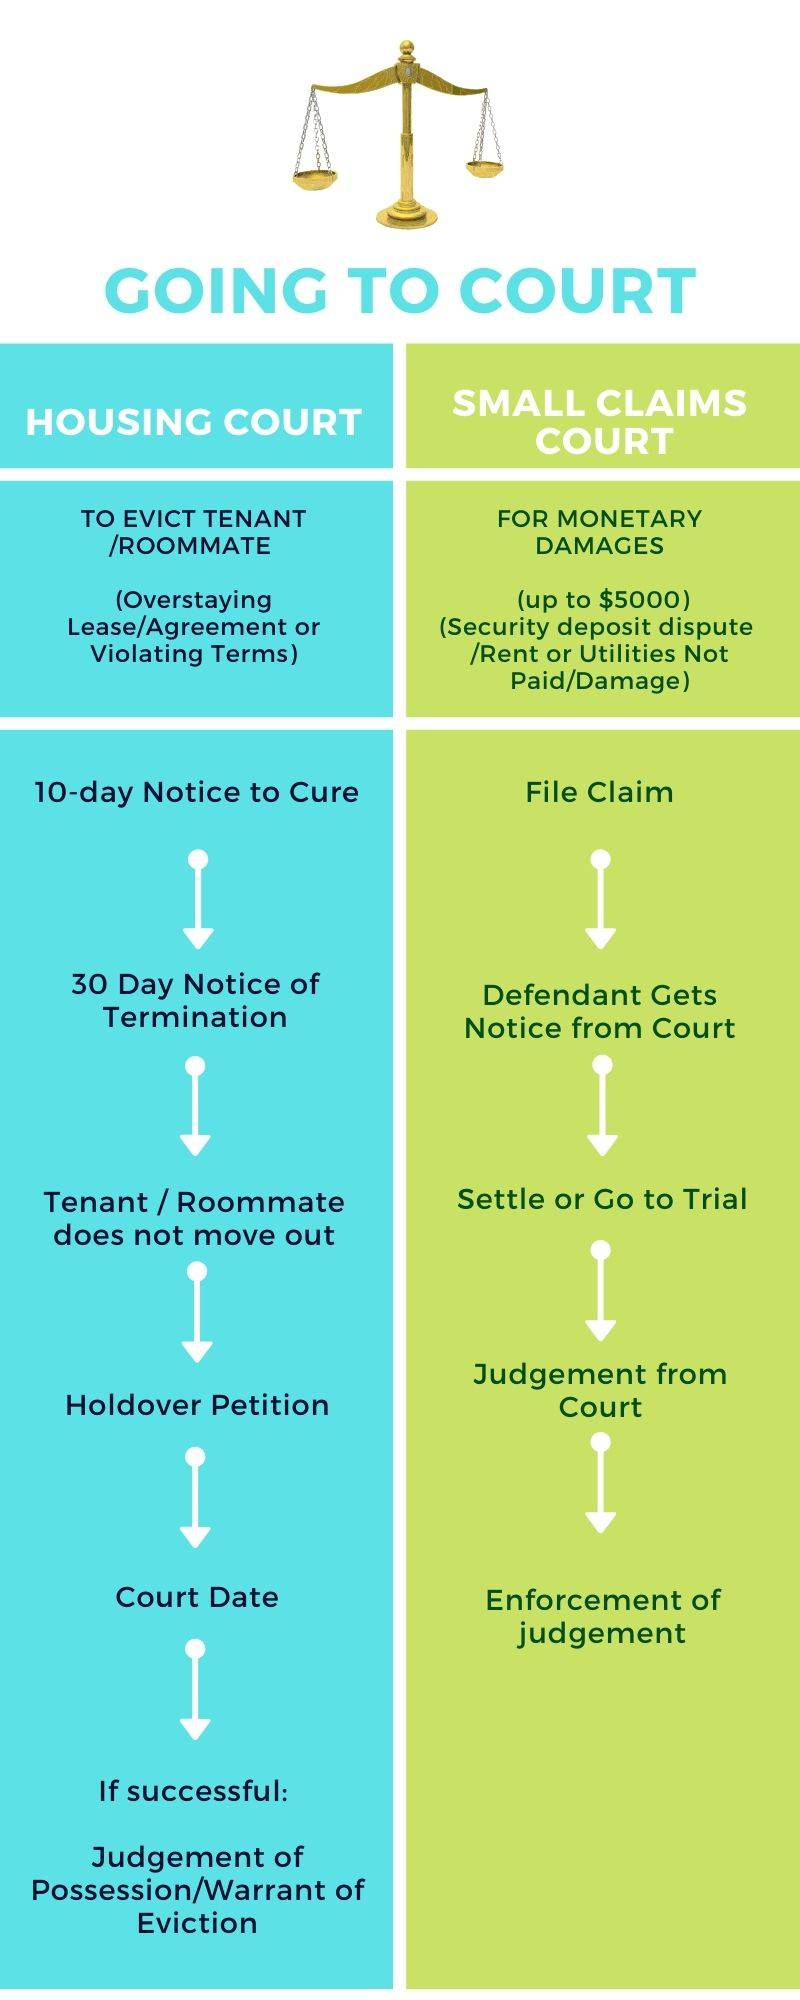 Infographic of side by side differences in procedures for Small Claims Court and Housing Court in NYC